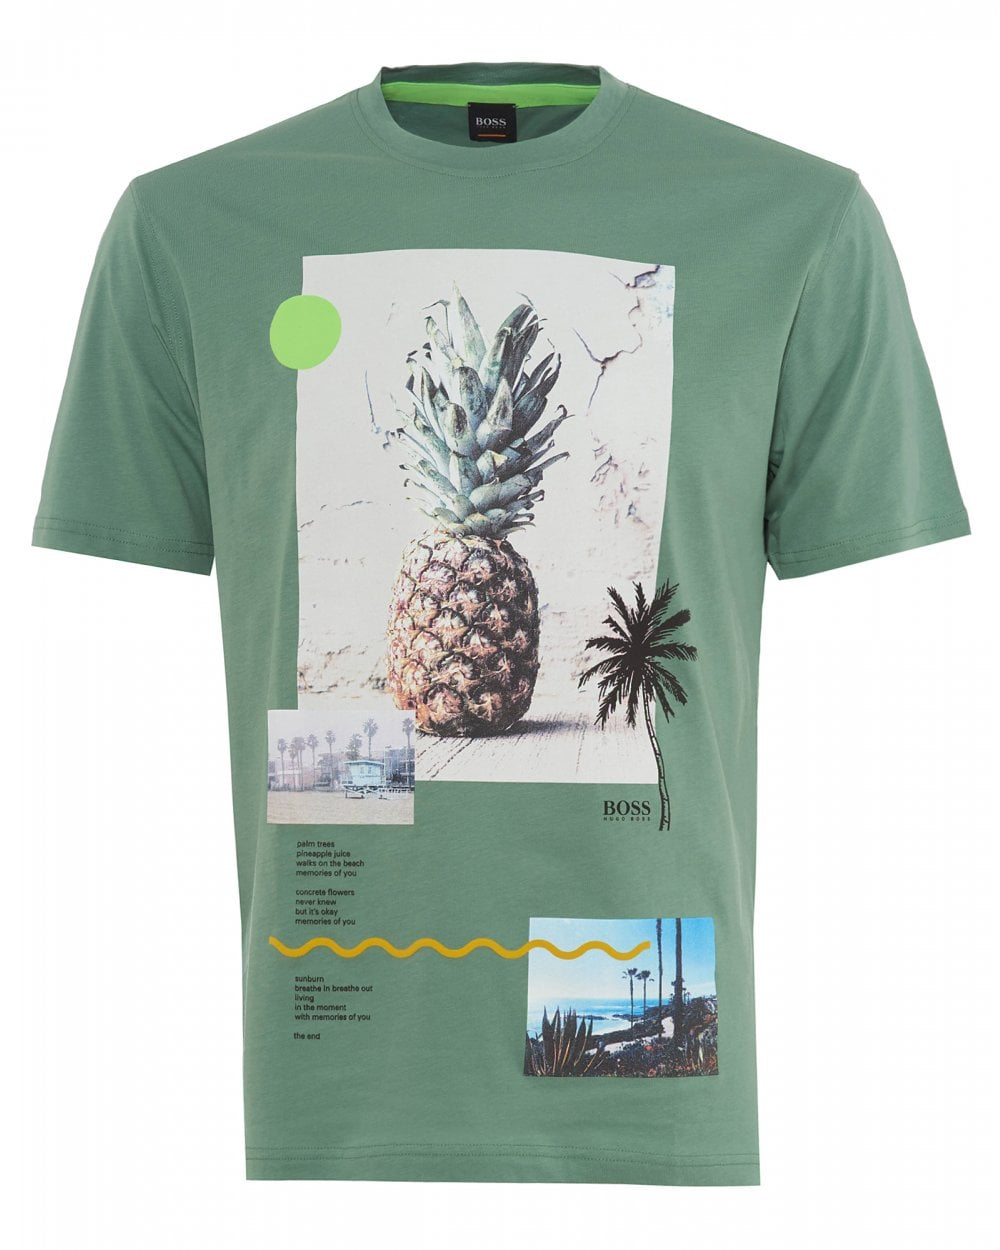 9c2e58903f9c BOSS Mens Green Pineapple T-Shirt, Teecher 3 Tee